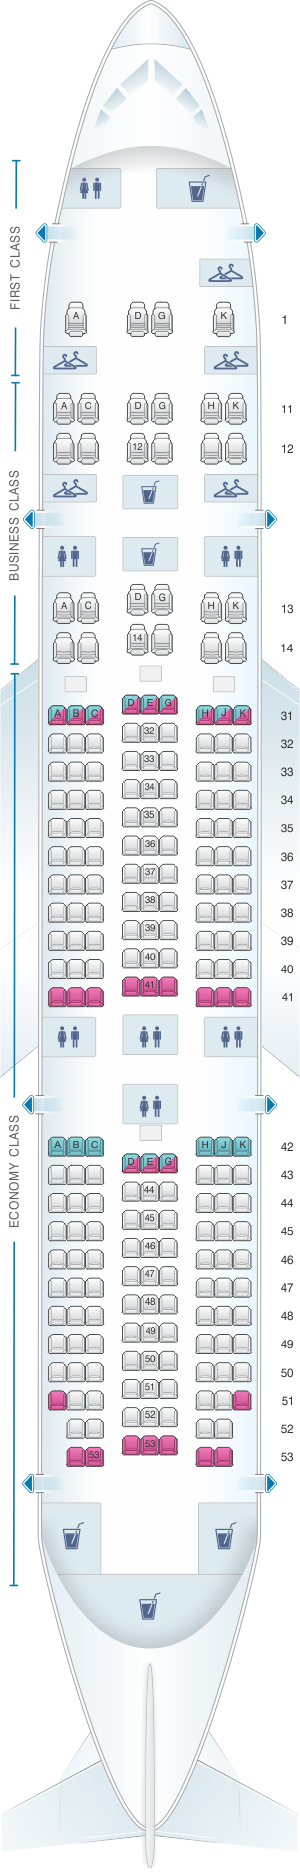 Seat map for China Southern Airlines Boeing B787 8